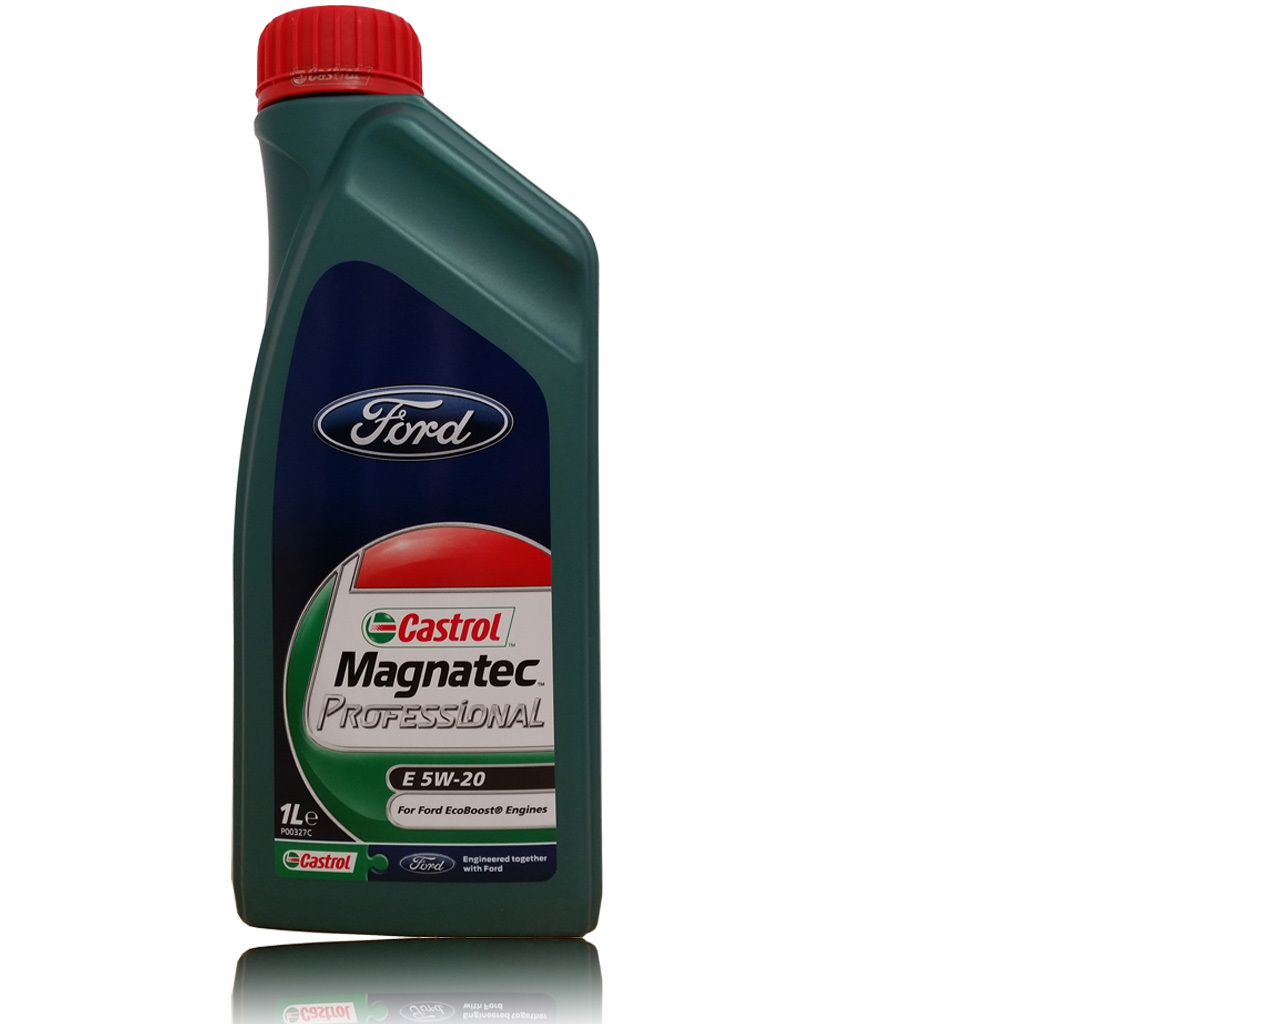 castrol magnatec professional e 5w 20 1 liter dose. Black Bedroom Furniture Sets. Home Design Ideas